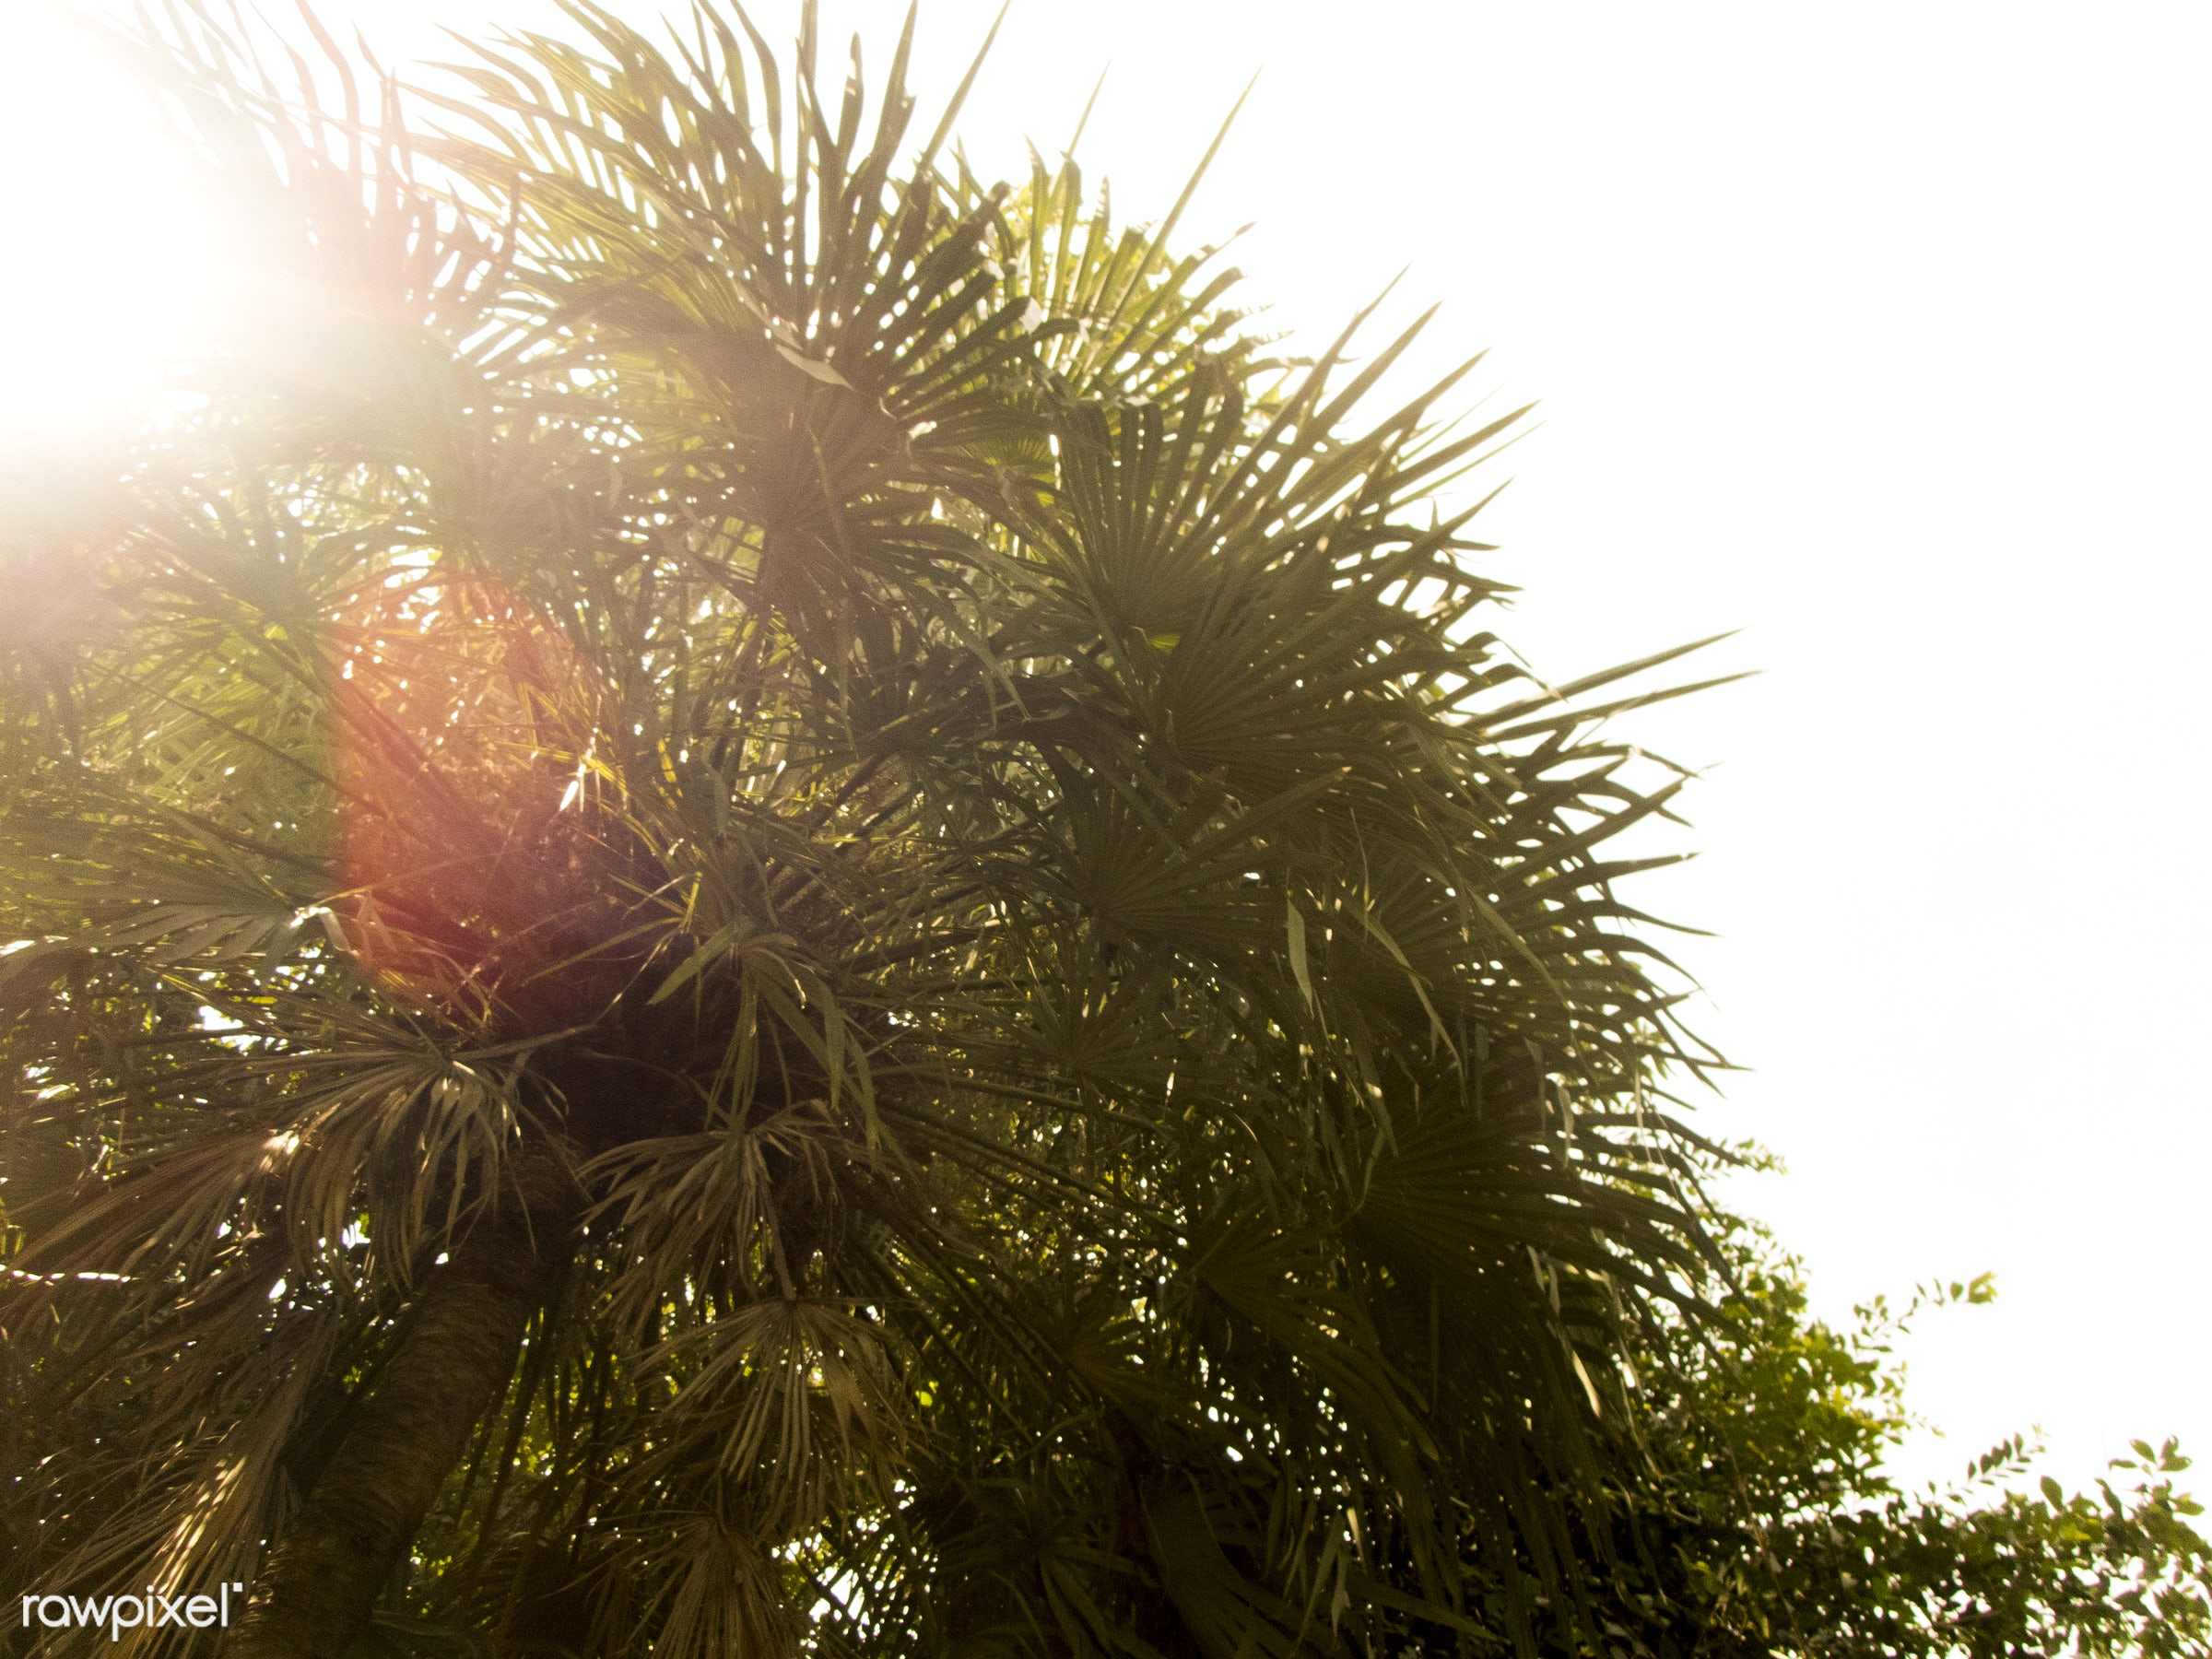 sunlight, environmental, palm tree, sky, environment, tree, nature, sunny, below, low angle view, sumner, summer